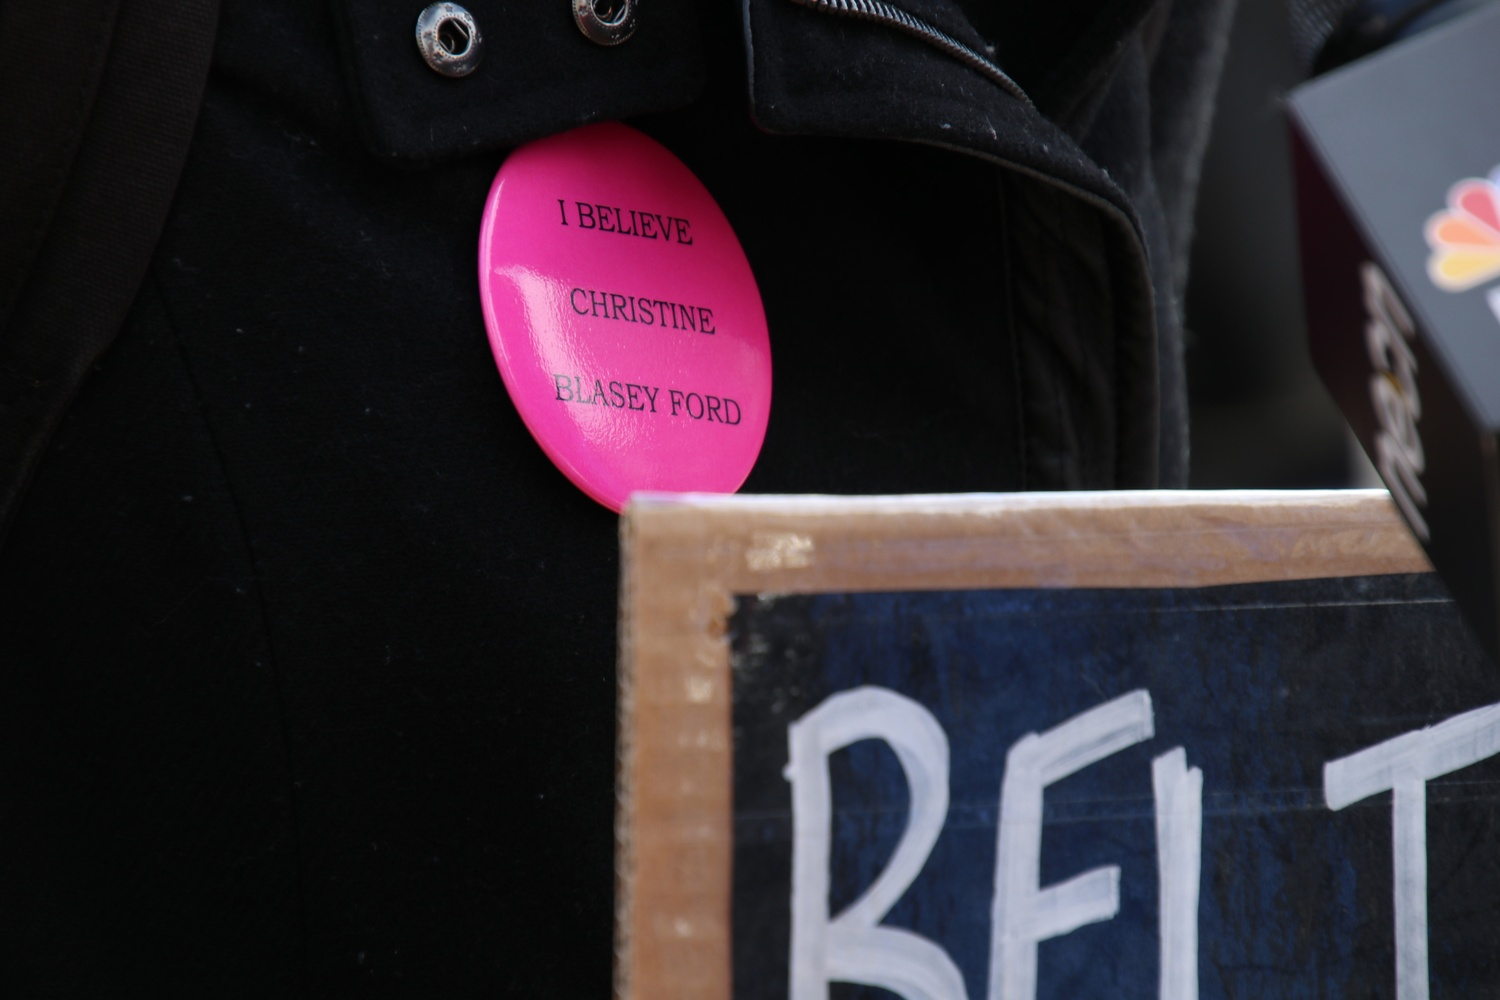 At a walkout Monday, HLS students wore buttons in support of Christine Blasey Ford, a professor alleging Supreme Court nominee Brett M. Kavanaugh sexually assaulted her when they were both teenagers.